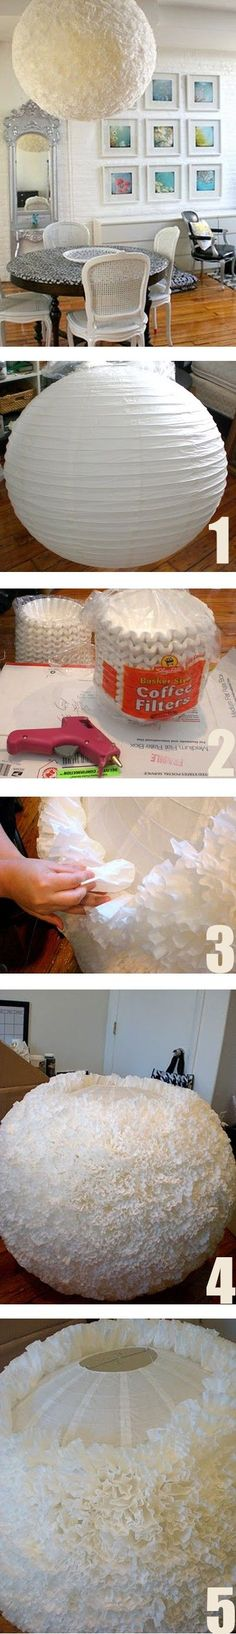 DIY Coffee Filter Lamp diy lighting craft crafts home decor easy crafts diy ideas diy crafts crafty lamp diy decor craft decorations how to home crafts tutorials teen crafts Diy Home Crafts, Diy Home Decor, Teen Crafts, Coffee Filter Crafts, Coffee Filters, Deco Luminaire, Creation Deco, Home Projects, Diy Furniture